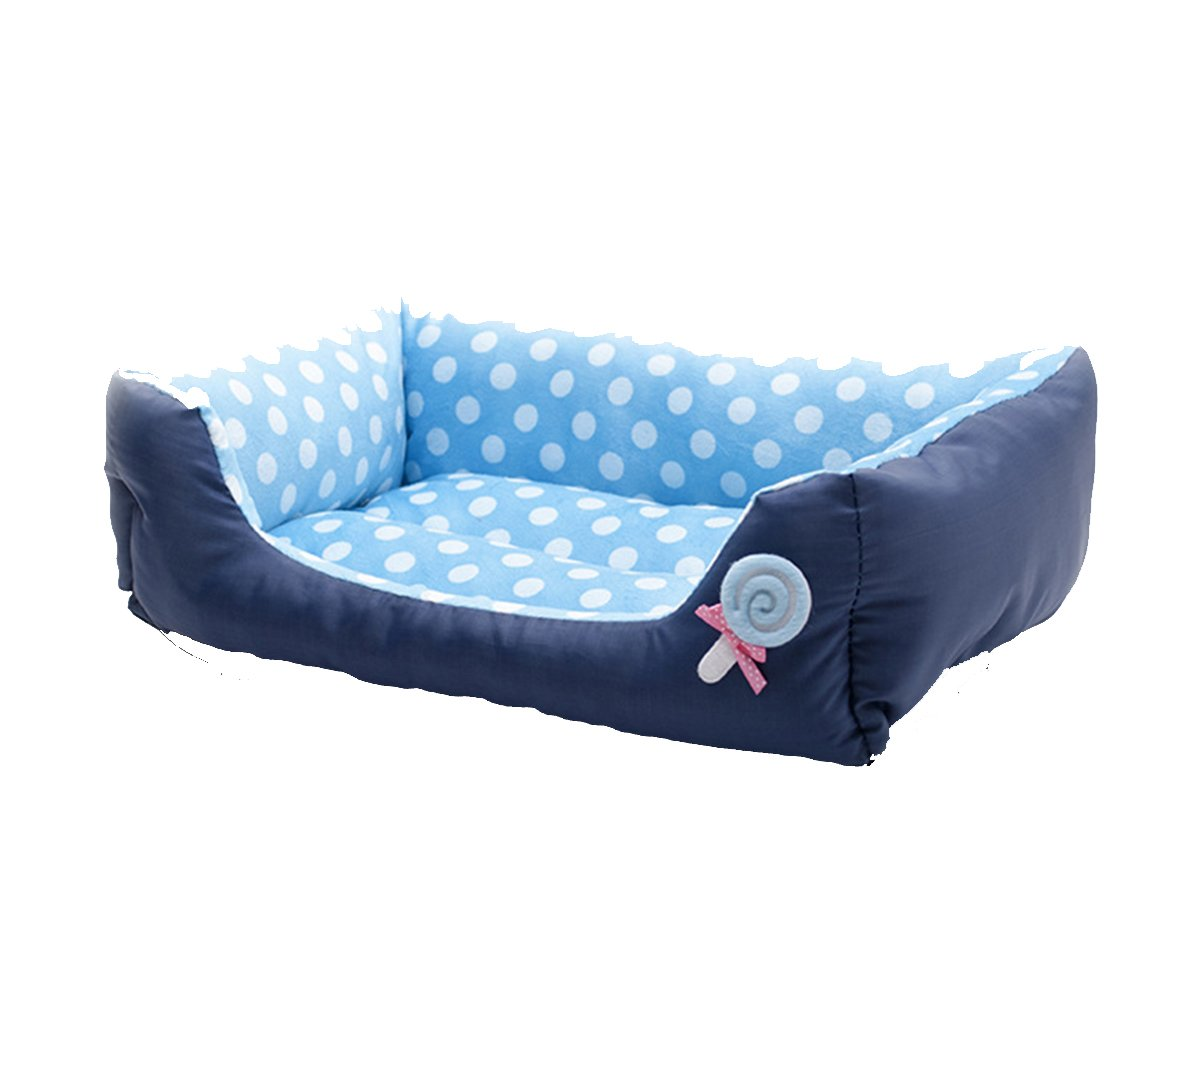 bluee Dots M& xFF08;22.817.75.5 inch& xFF09; bluee Dots M& xFF08;22.817.75.5 inch& xFF09; Dog Beds Pets House Ultra-Soft Nest Water ResistantPuppy Dogs Beds Warm Cats House (M(22.817.75.5 inch), bluee Dots)